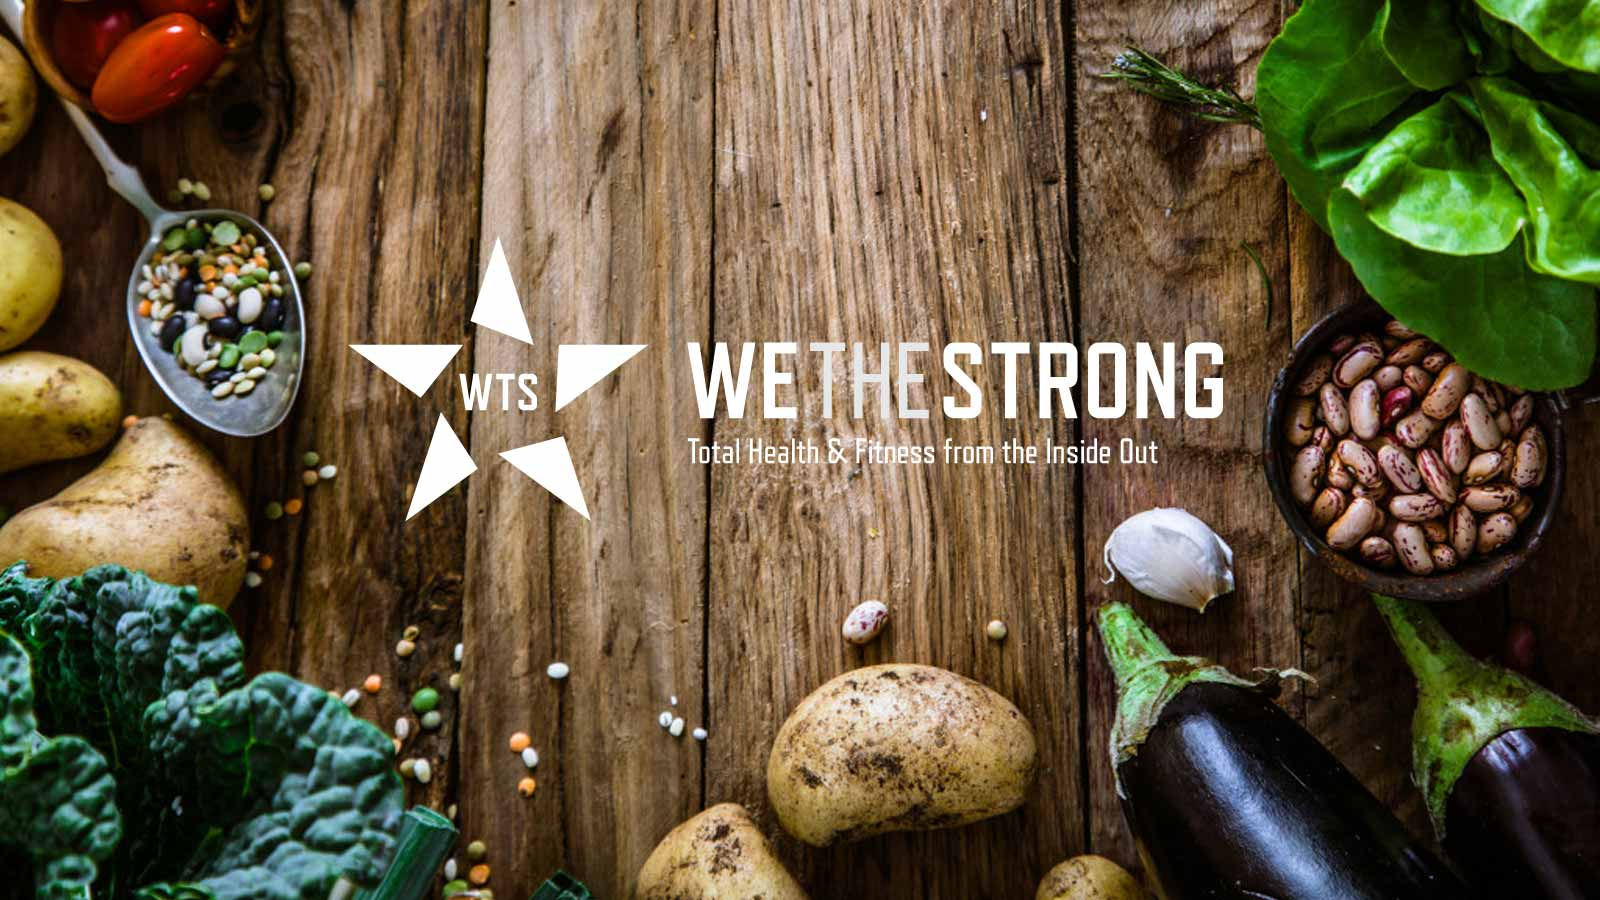 WETHESTRONG: Total Heath and Fitness